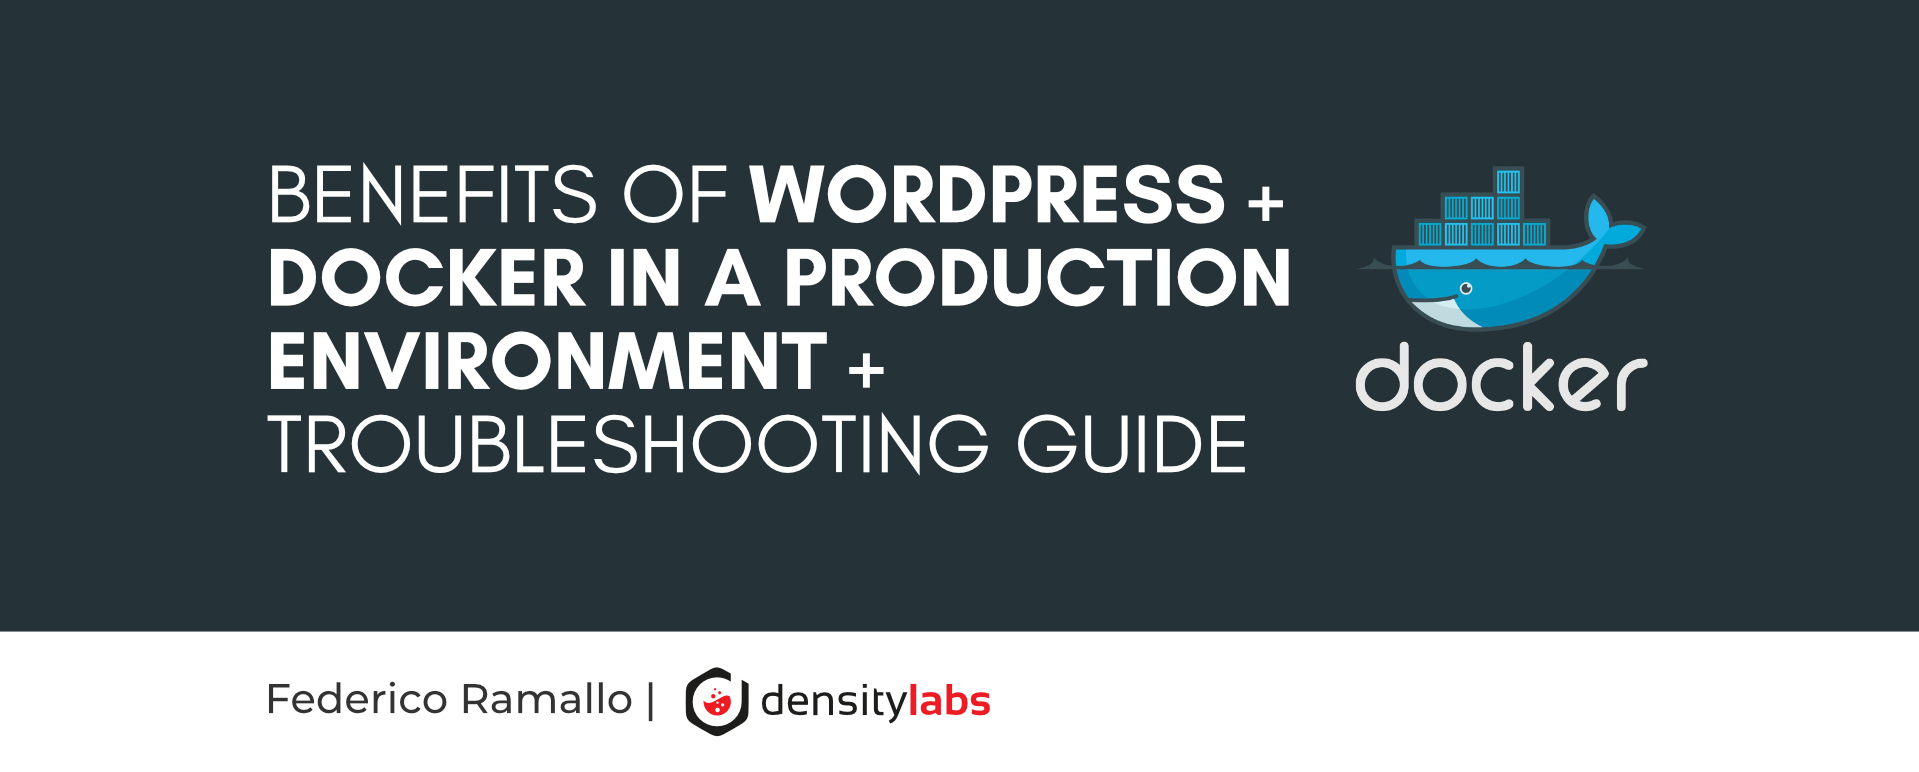 Benefits of WordPress + Docker in a production environment + troubleshooting guide.